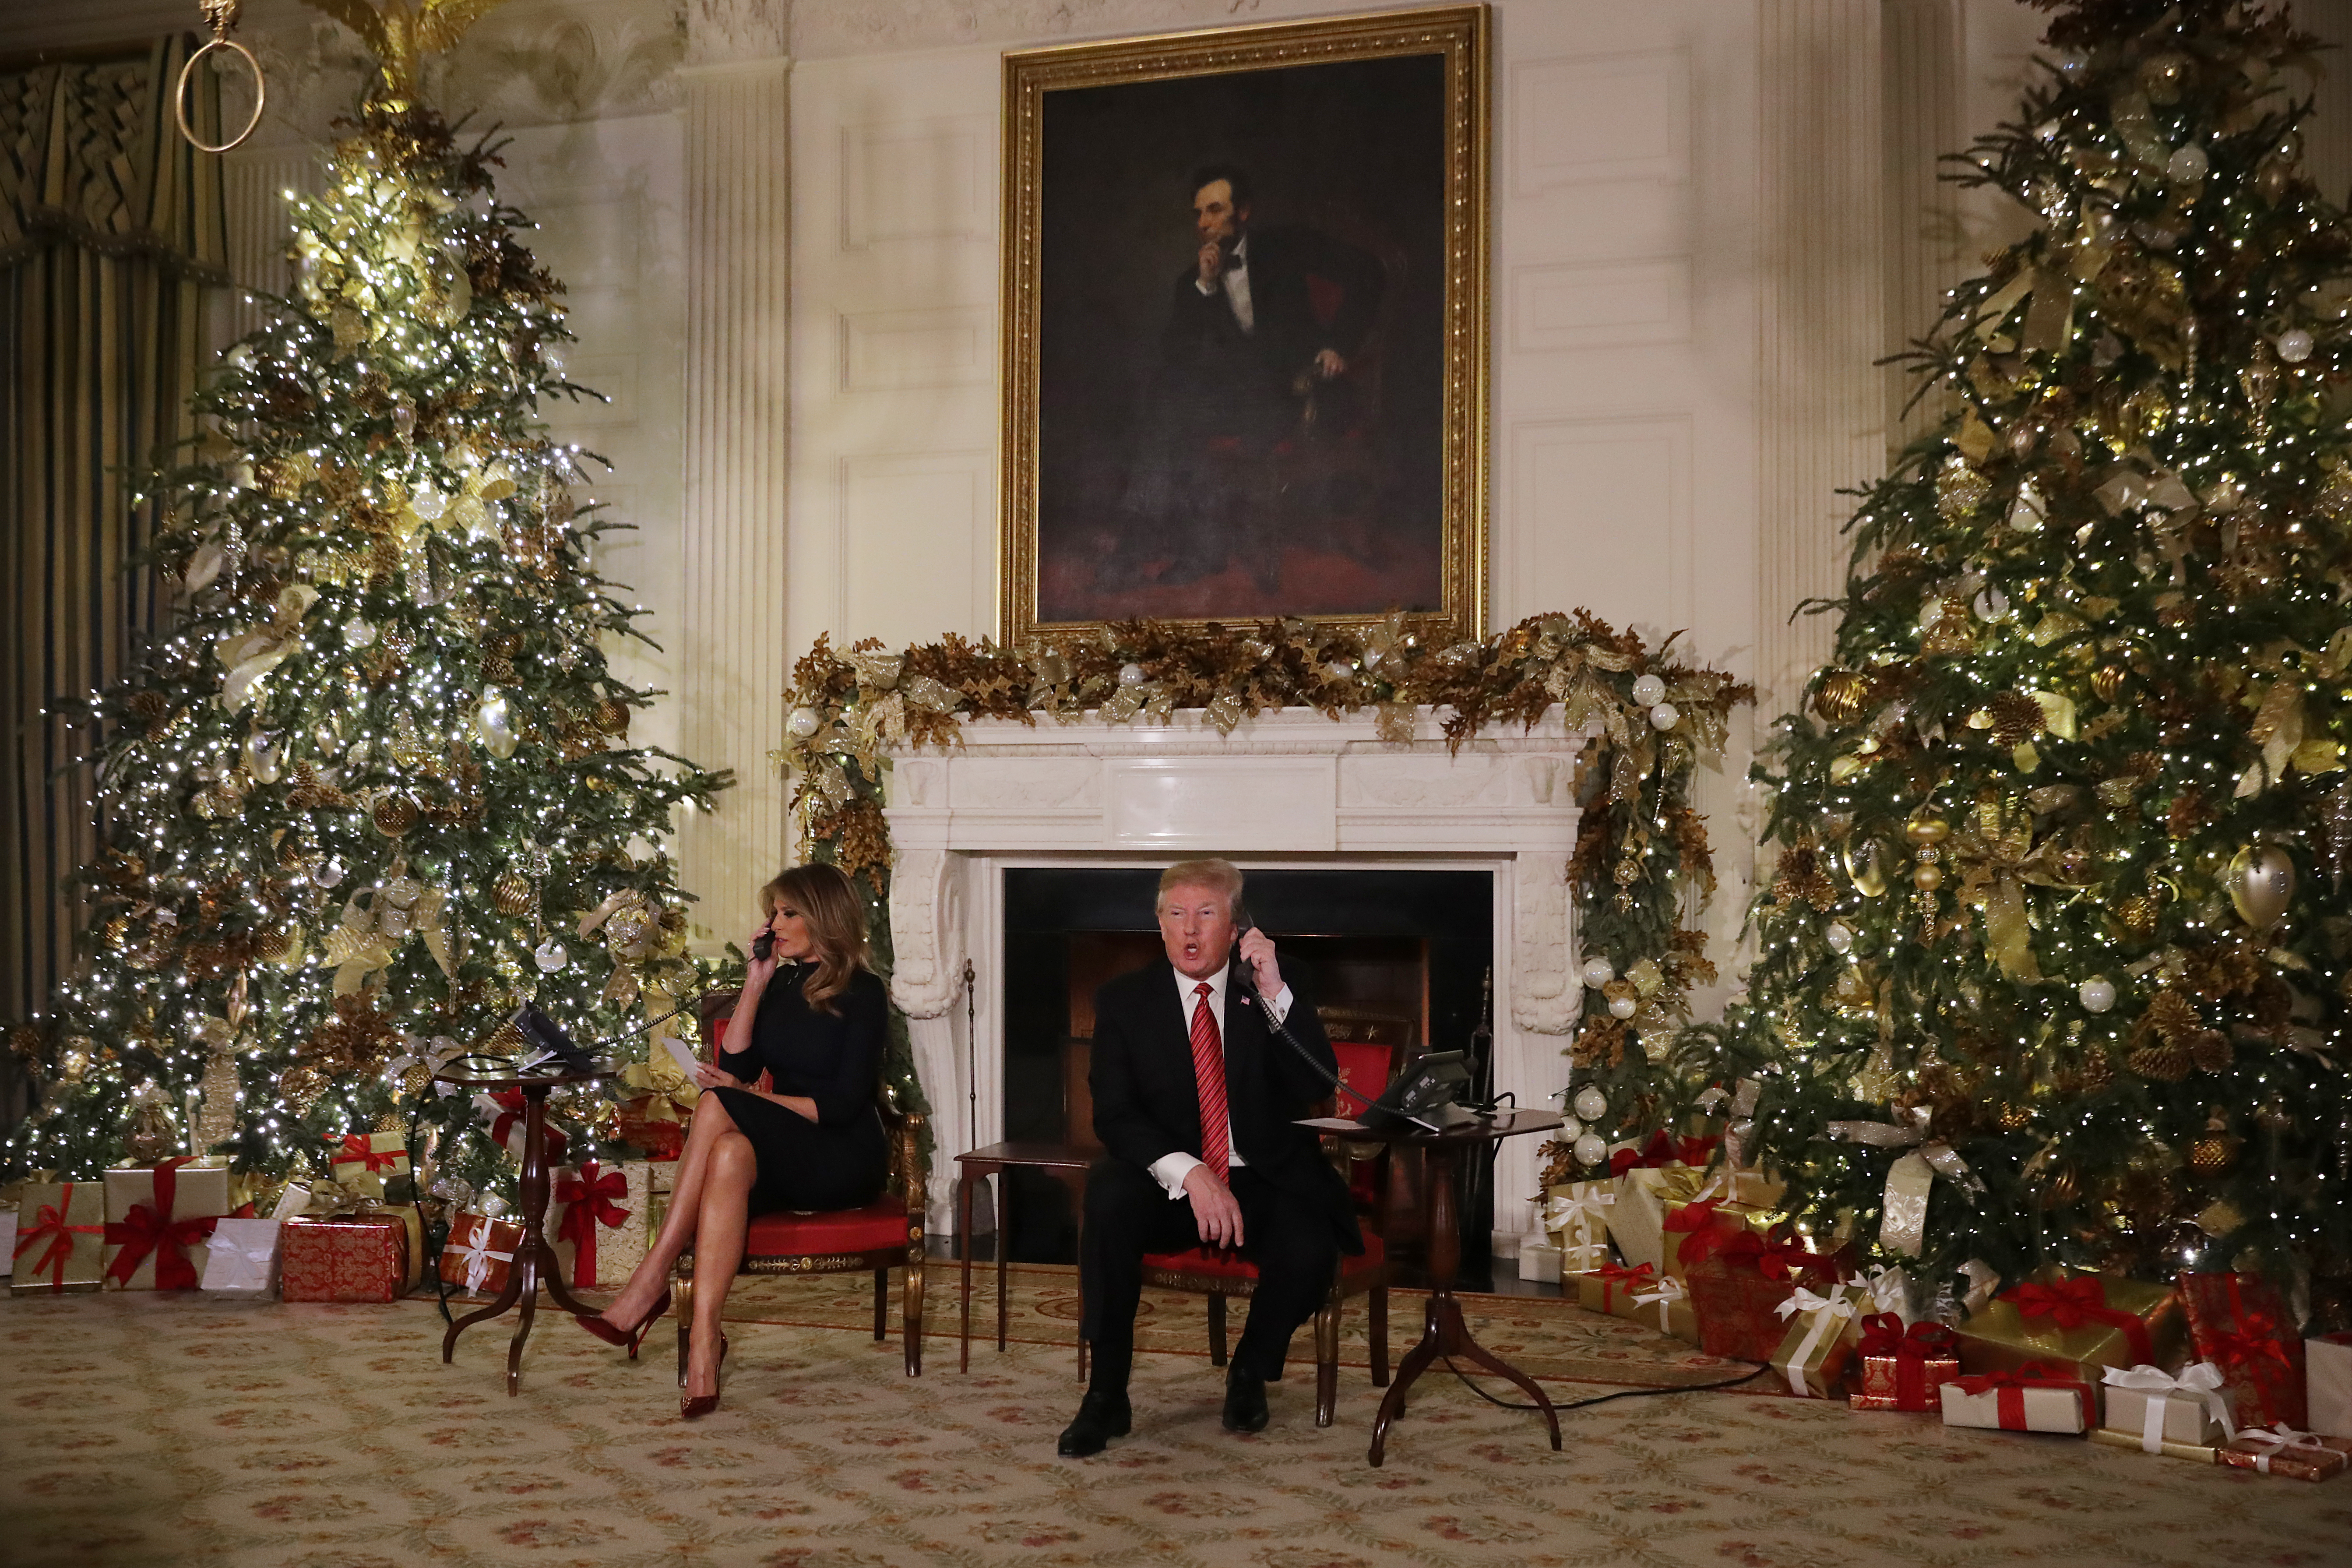 Trump Christmas.Trump Tells A Child On Christmas Eve That Believing In Santa